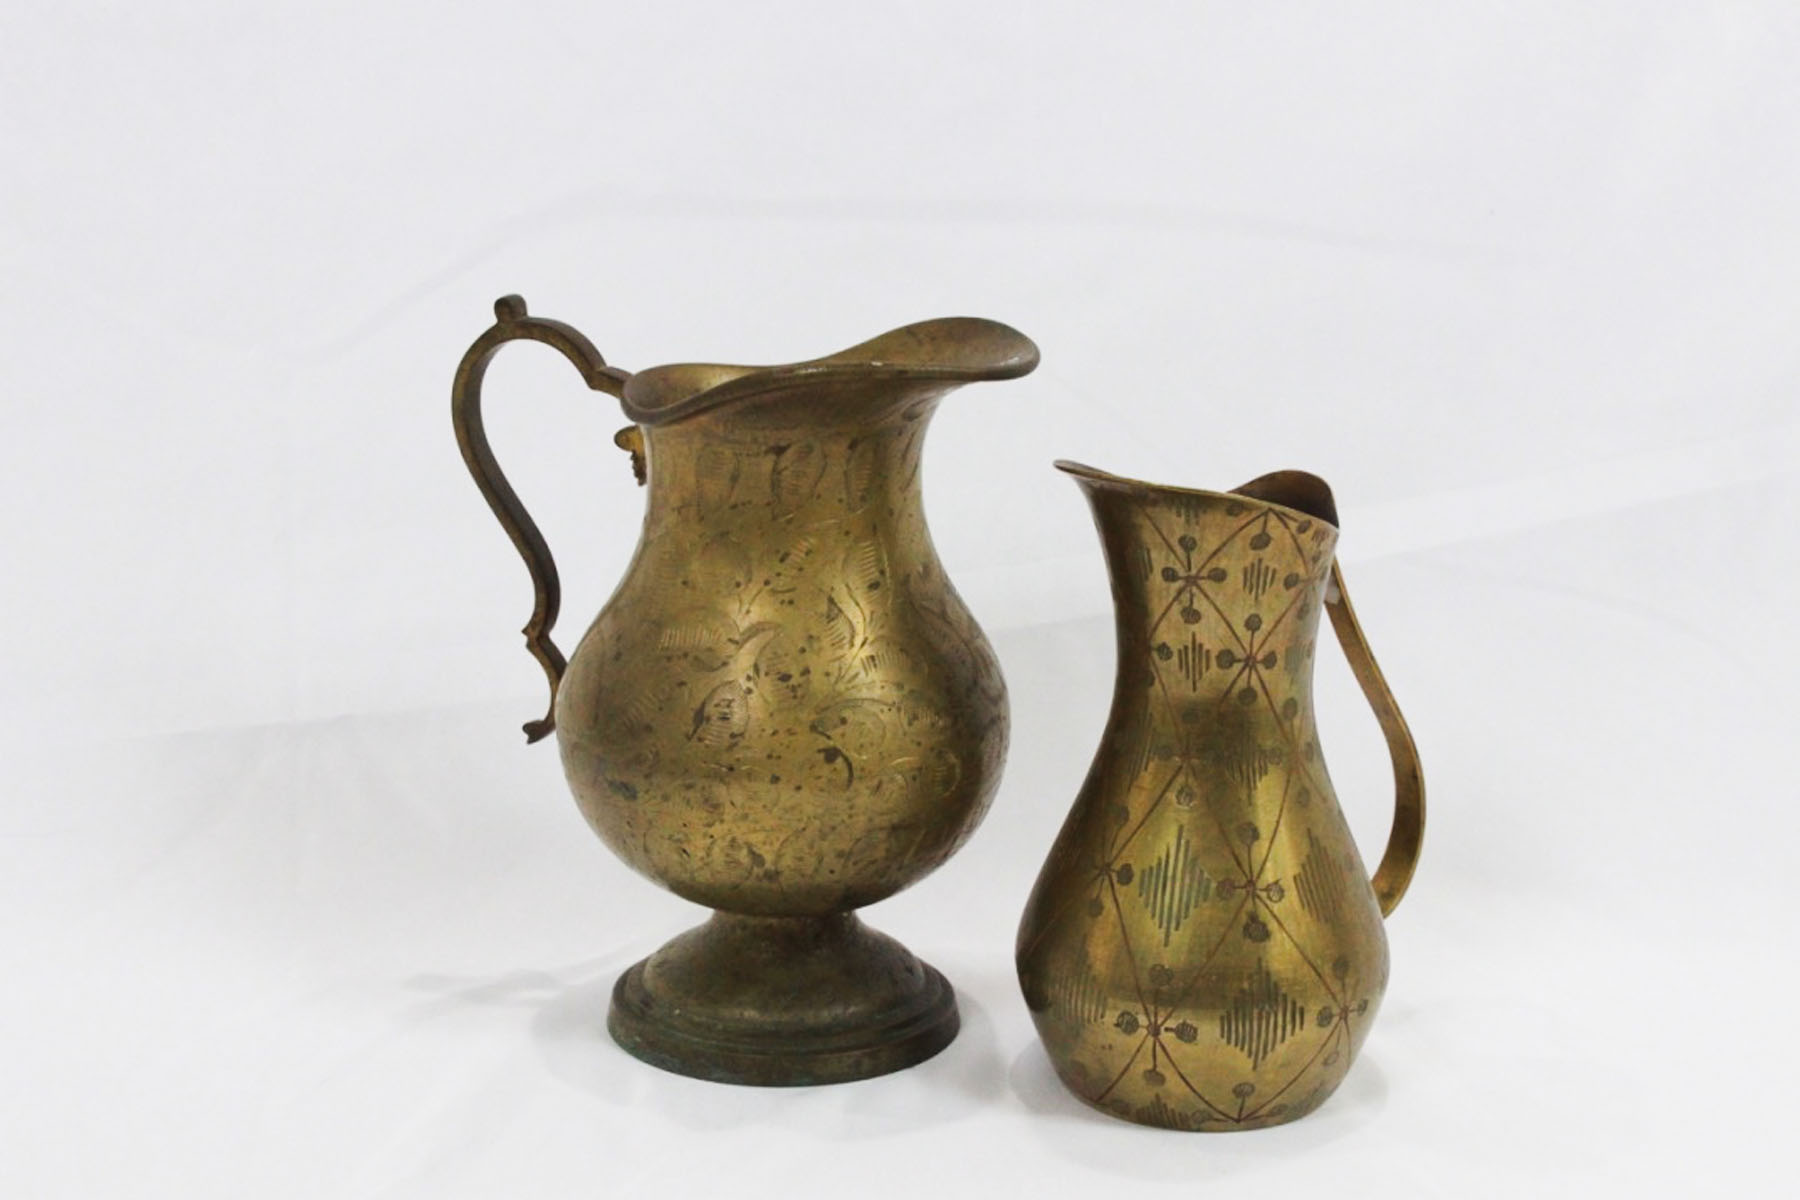 Brass Pitchers - Scavenged Vintage